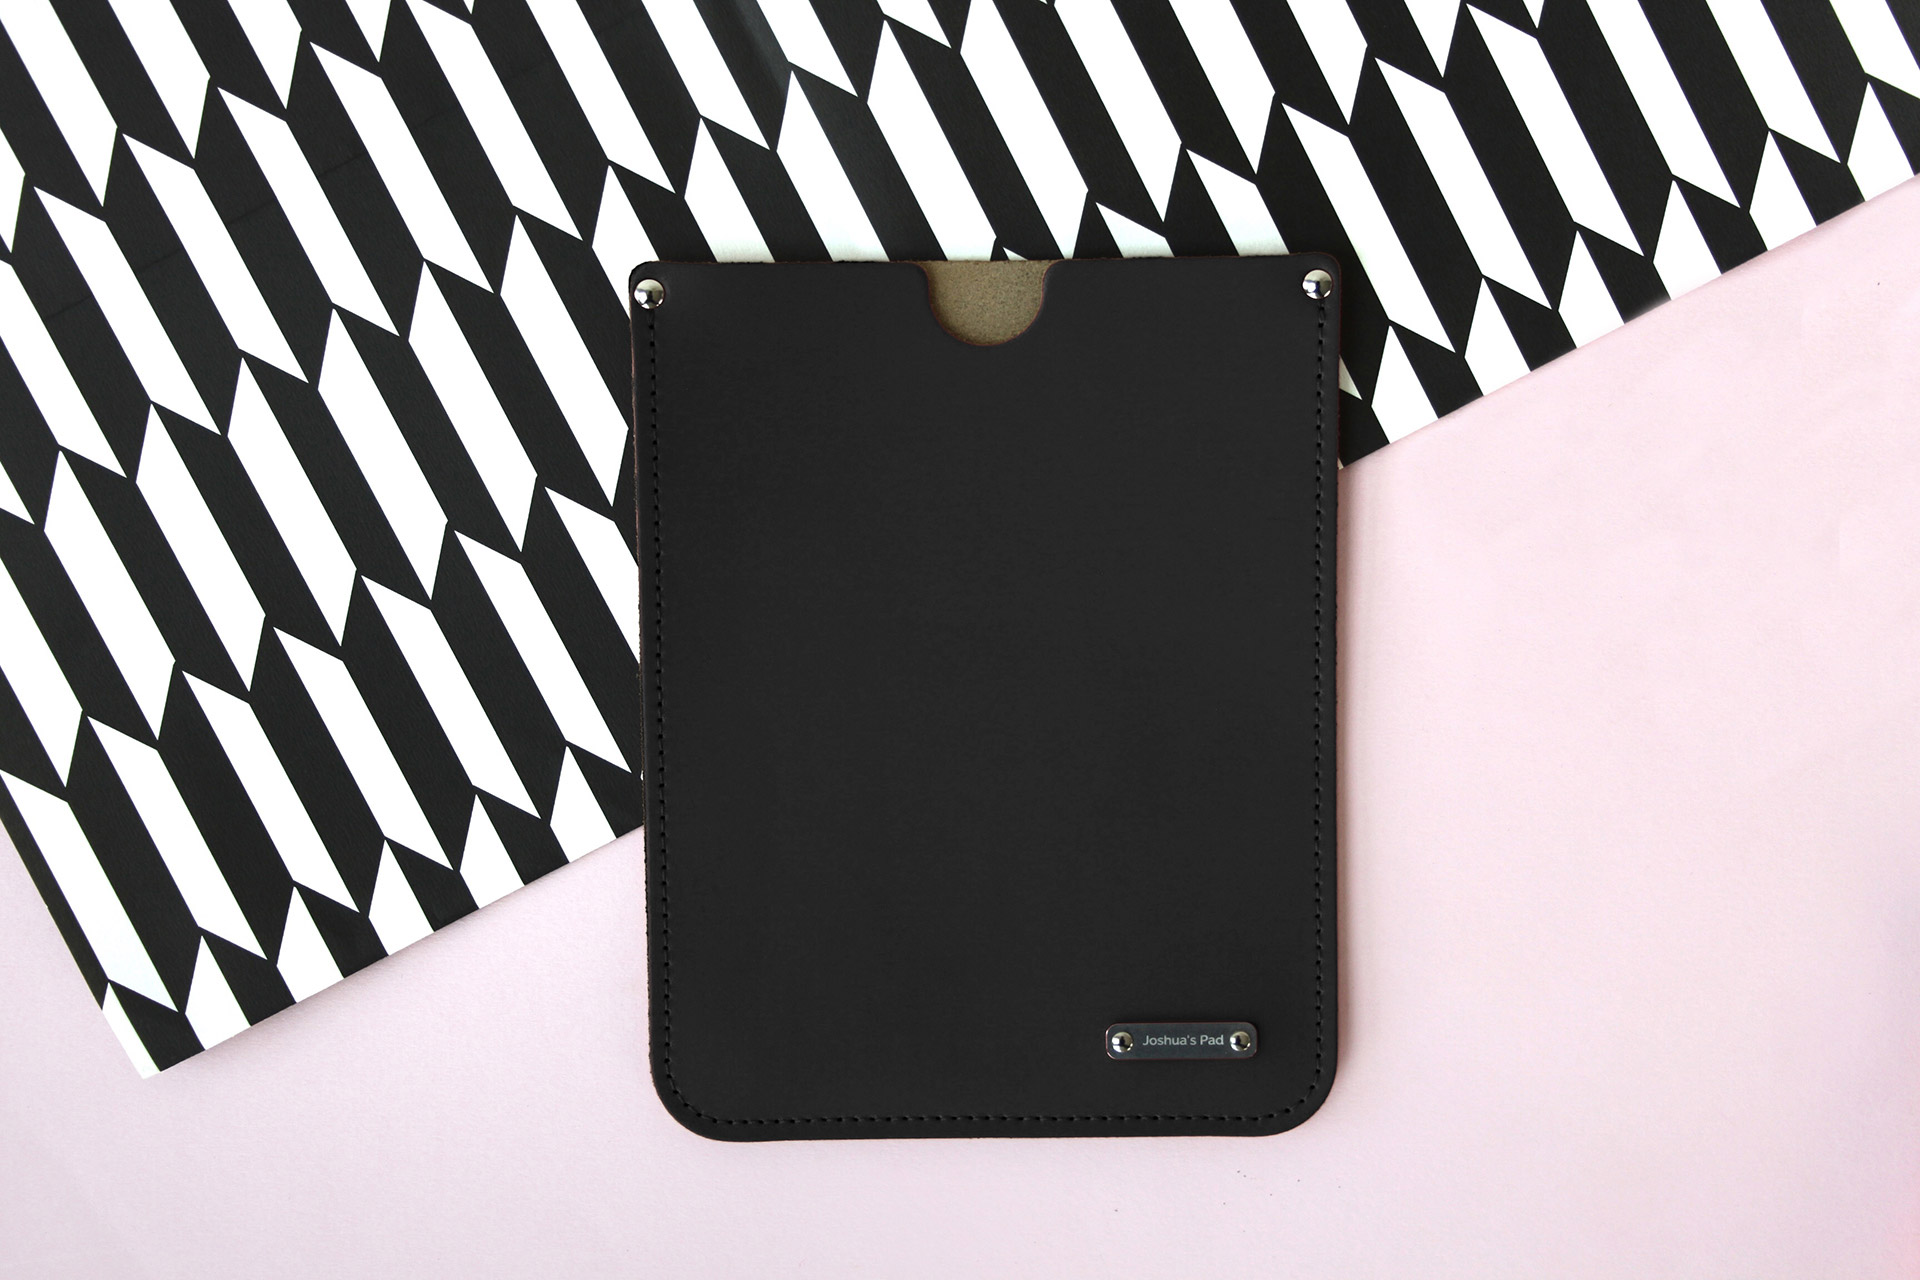 IPAD SLEEVE From £25.00